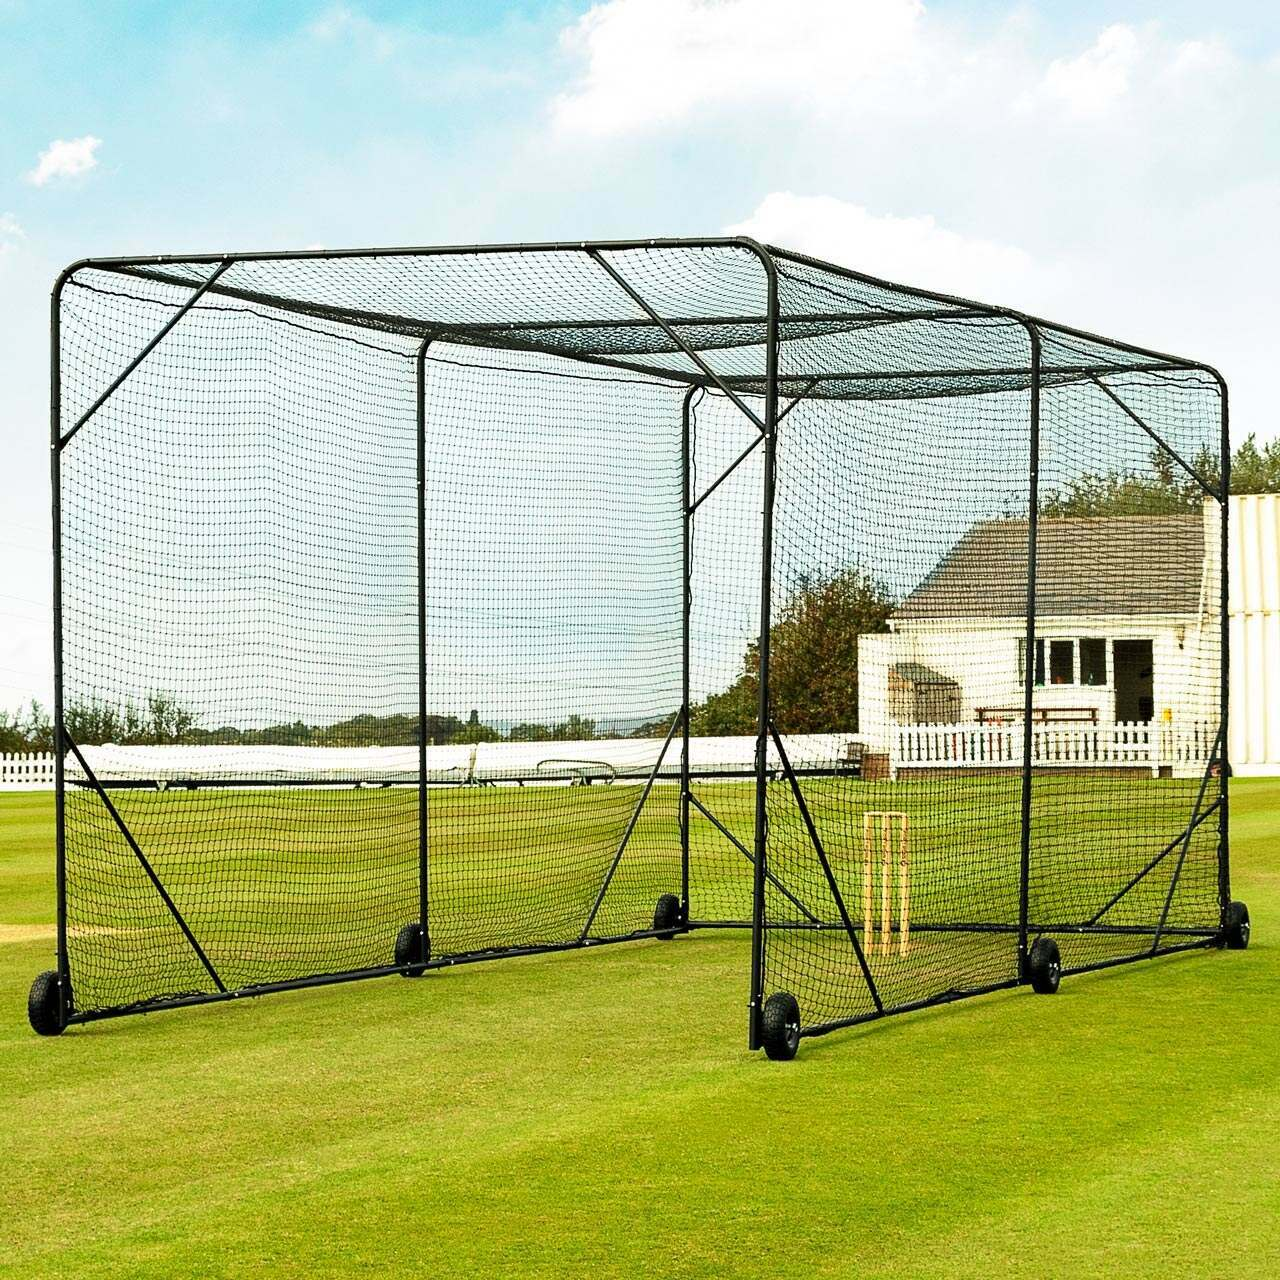 FORTRESS Mobile Cricket Cage [Cage Only]